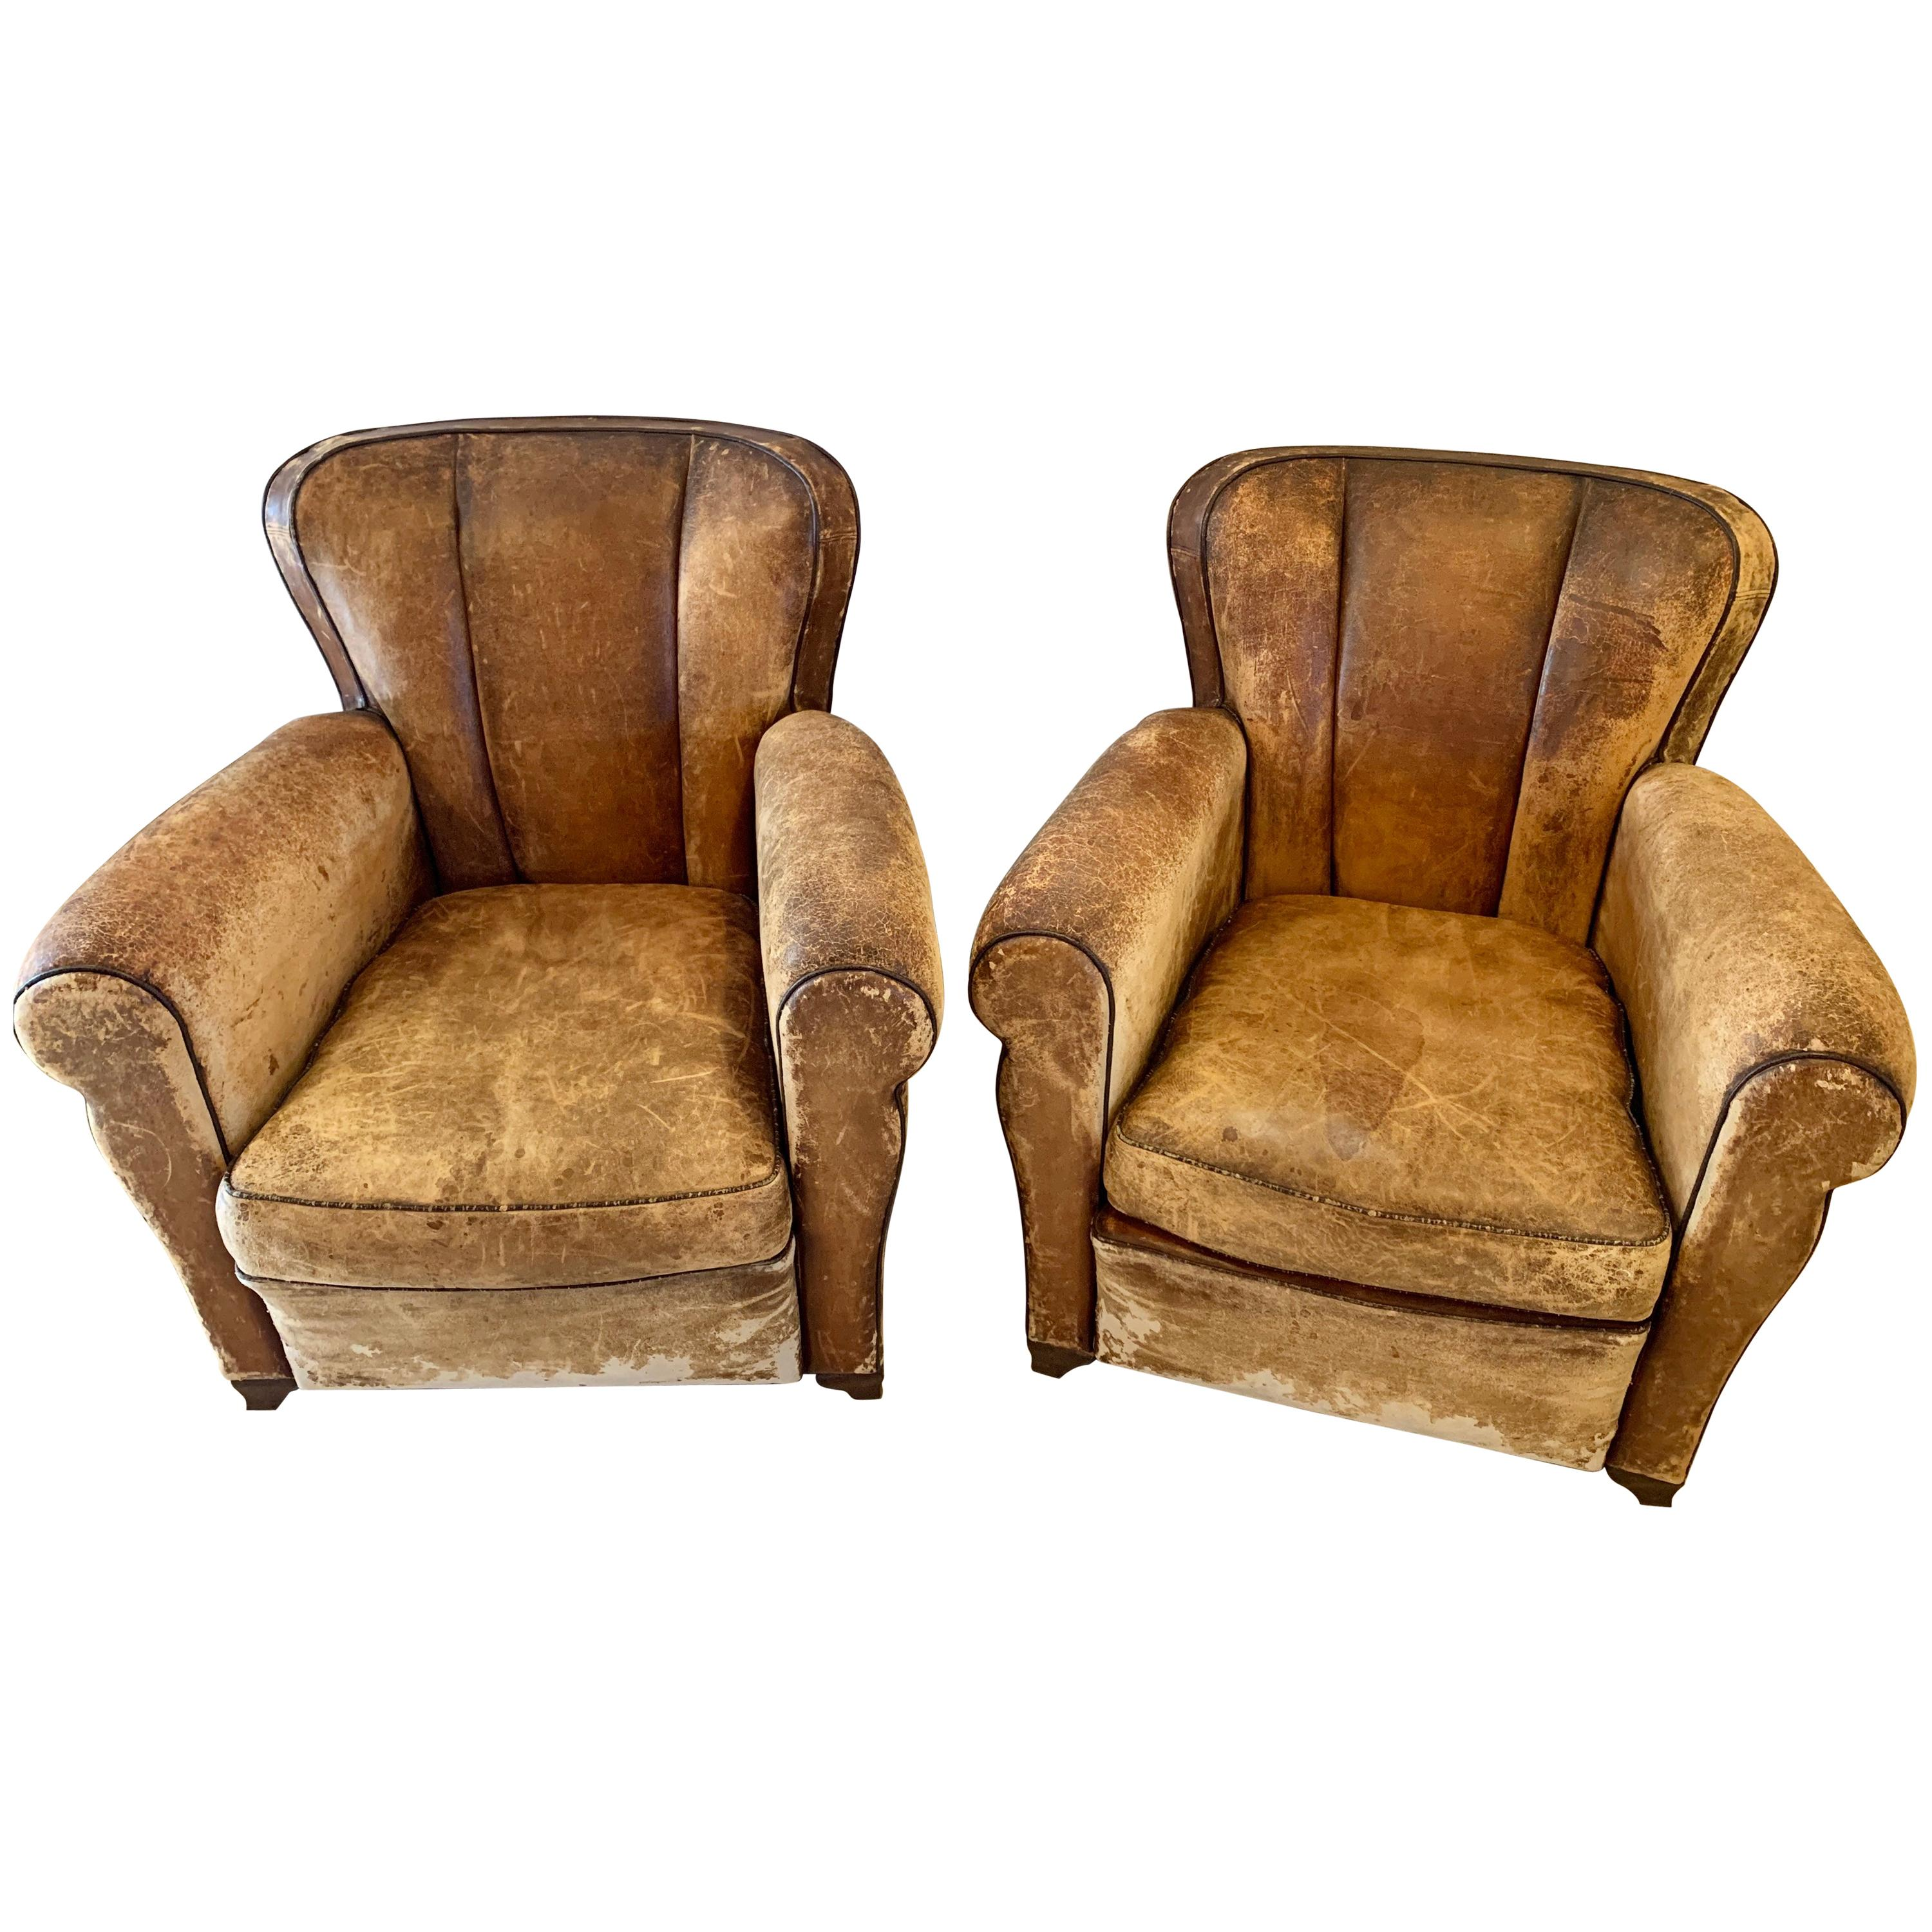 Pair of Art Deco Leather Lounge or Club Chairs, circa 1940s